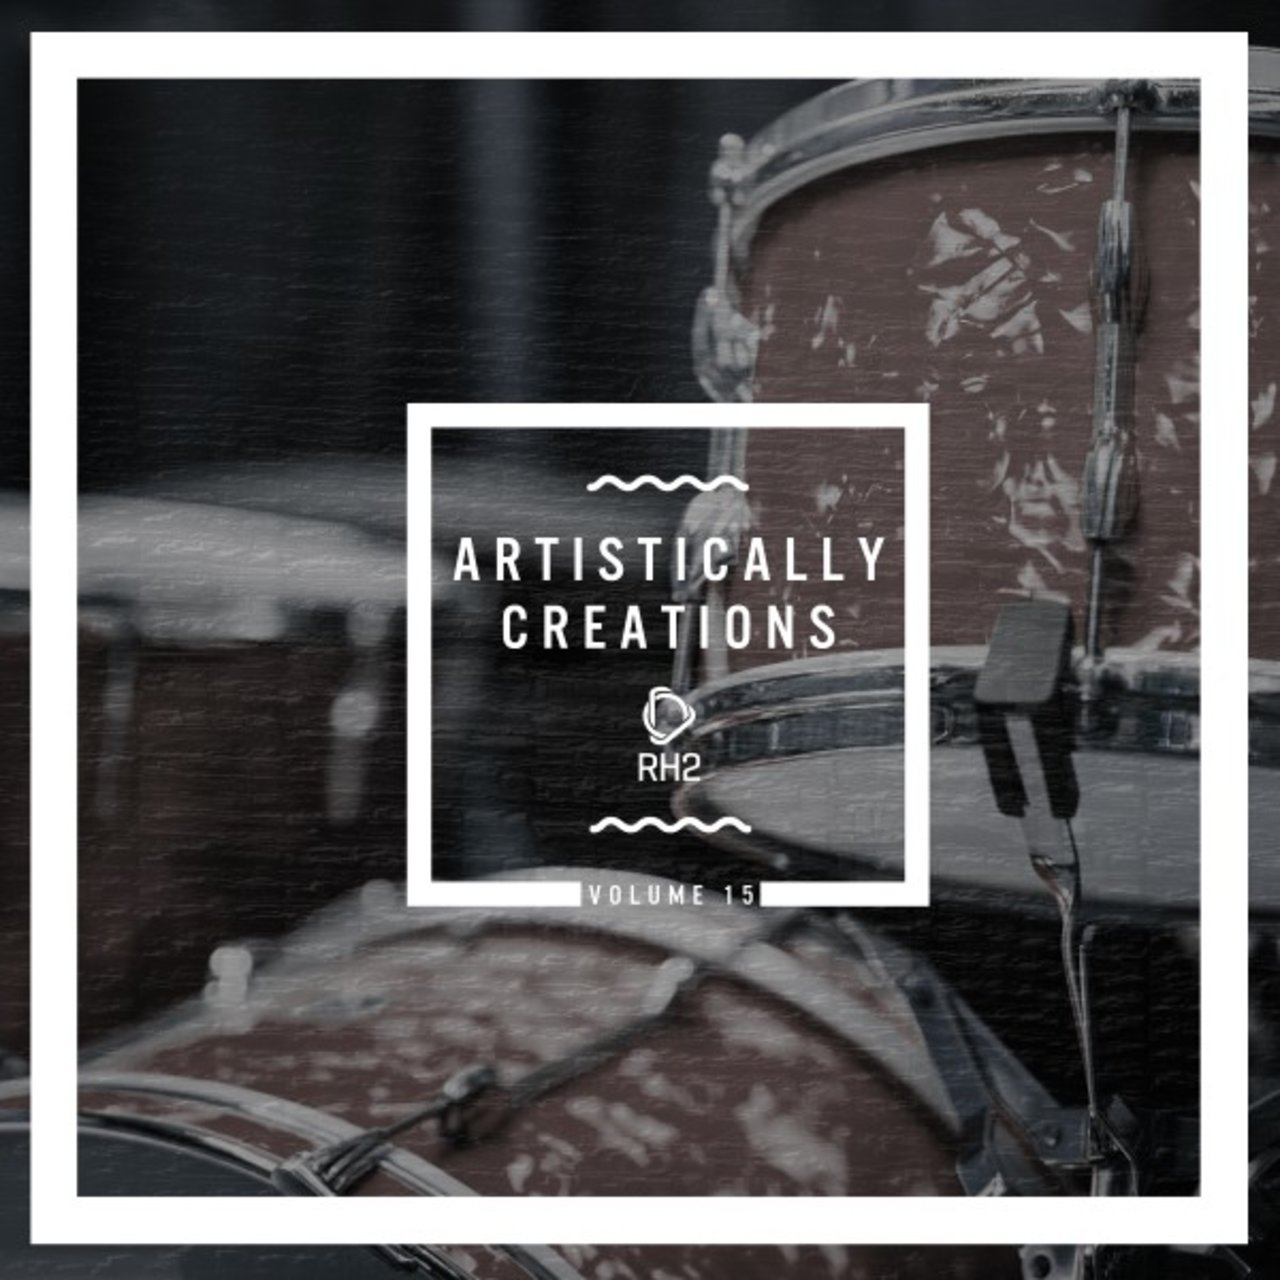 Artistically Creations, Vol. 15